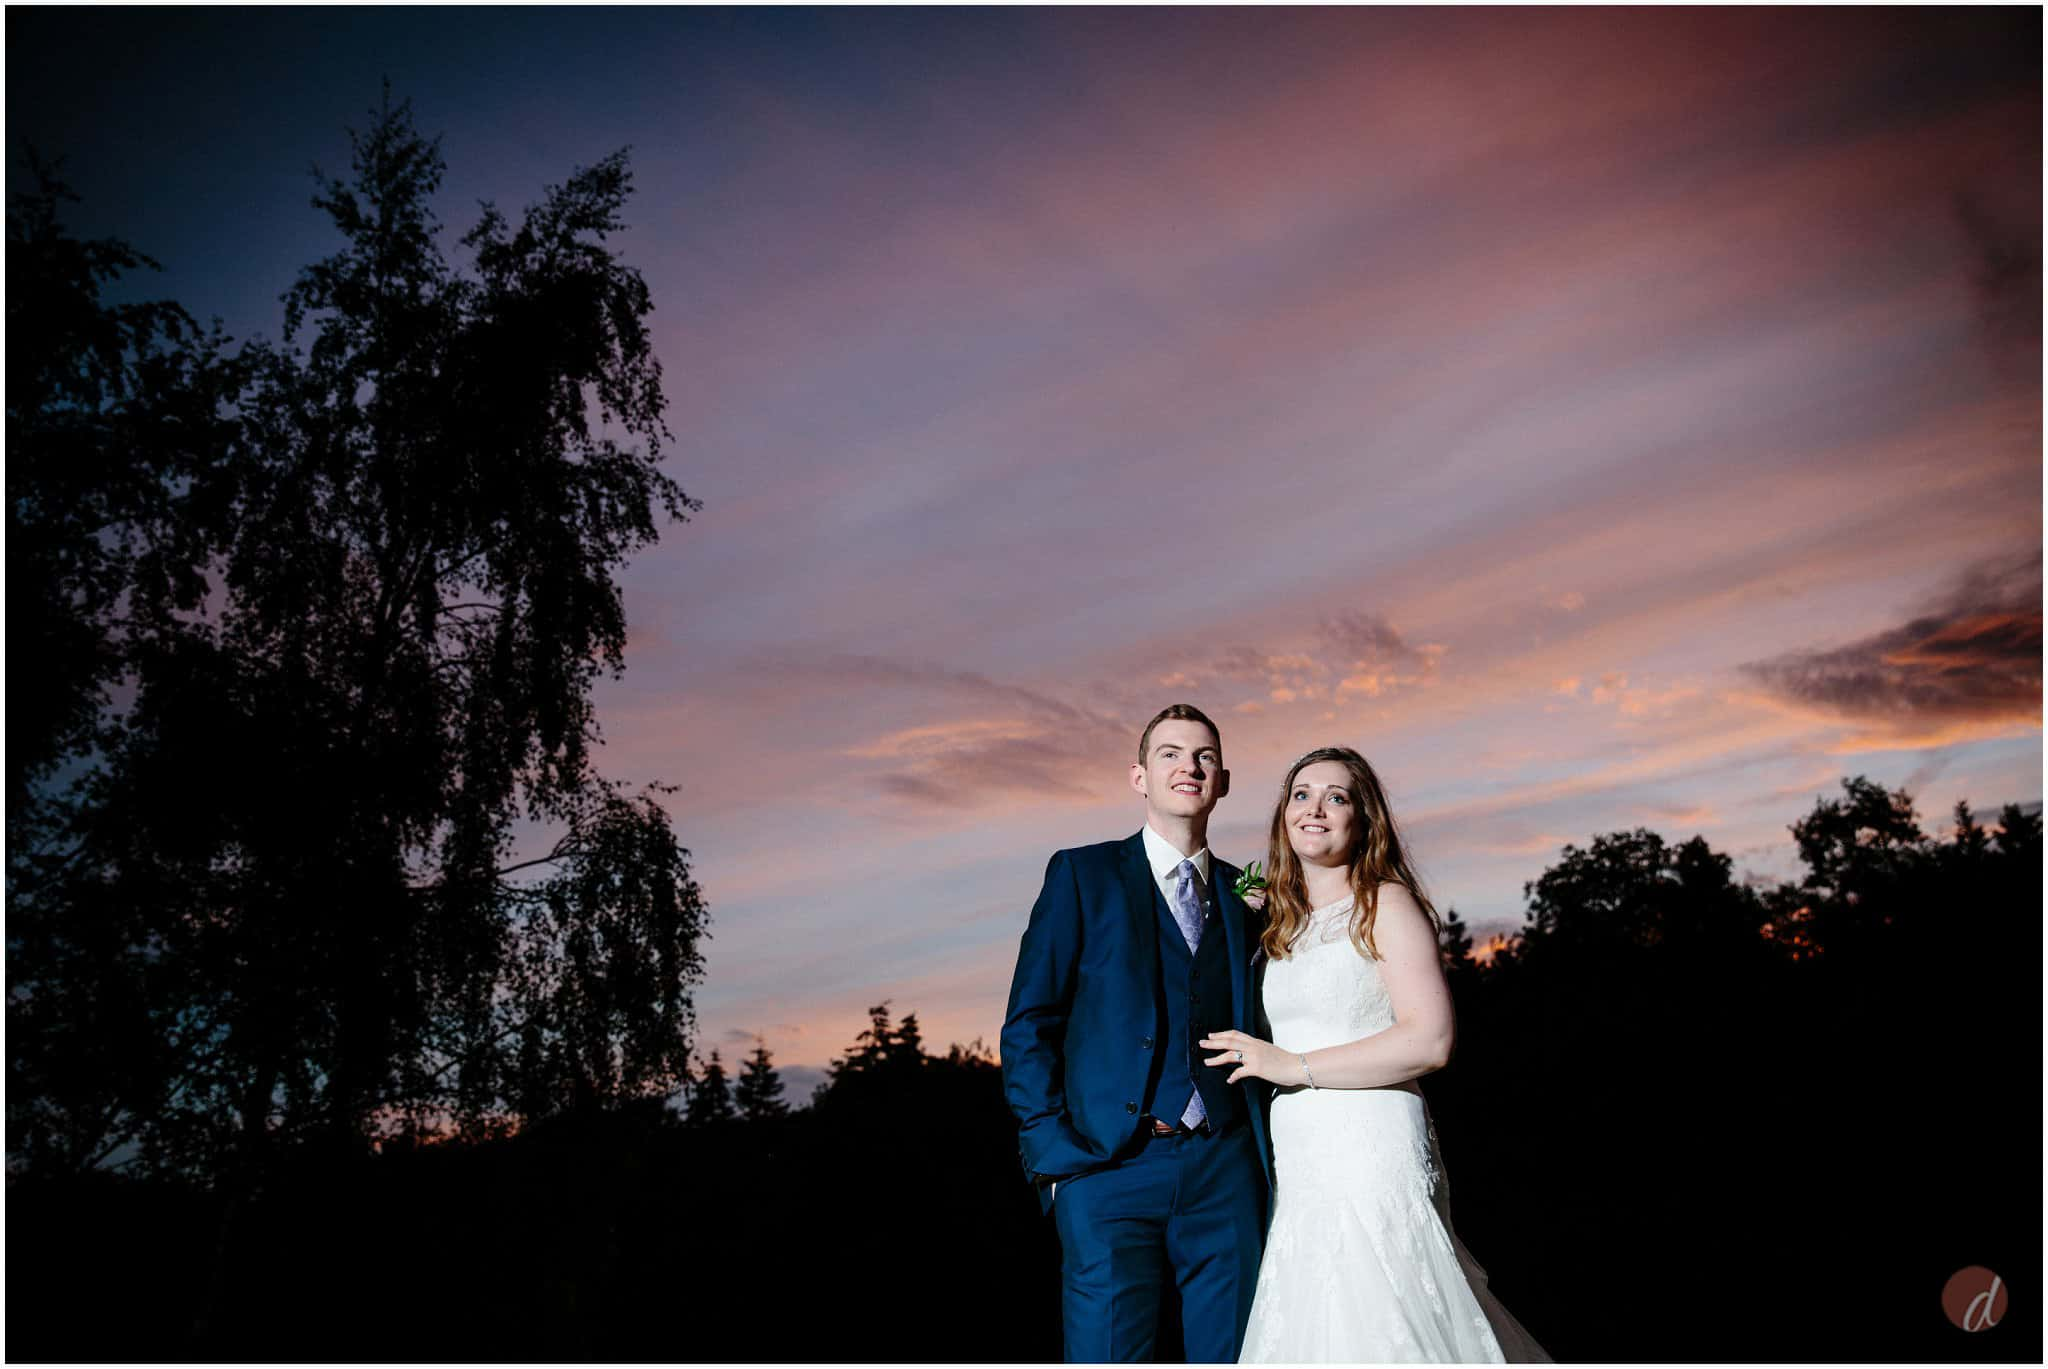 salomons wedding photos